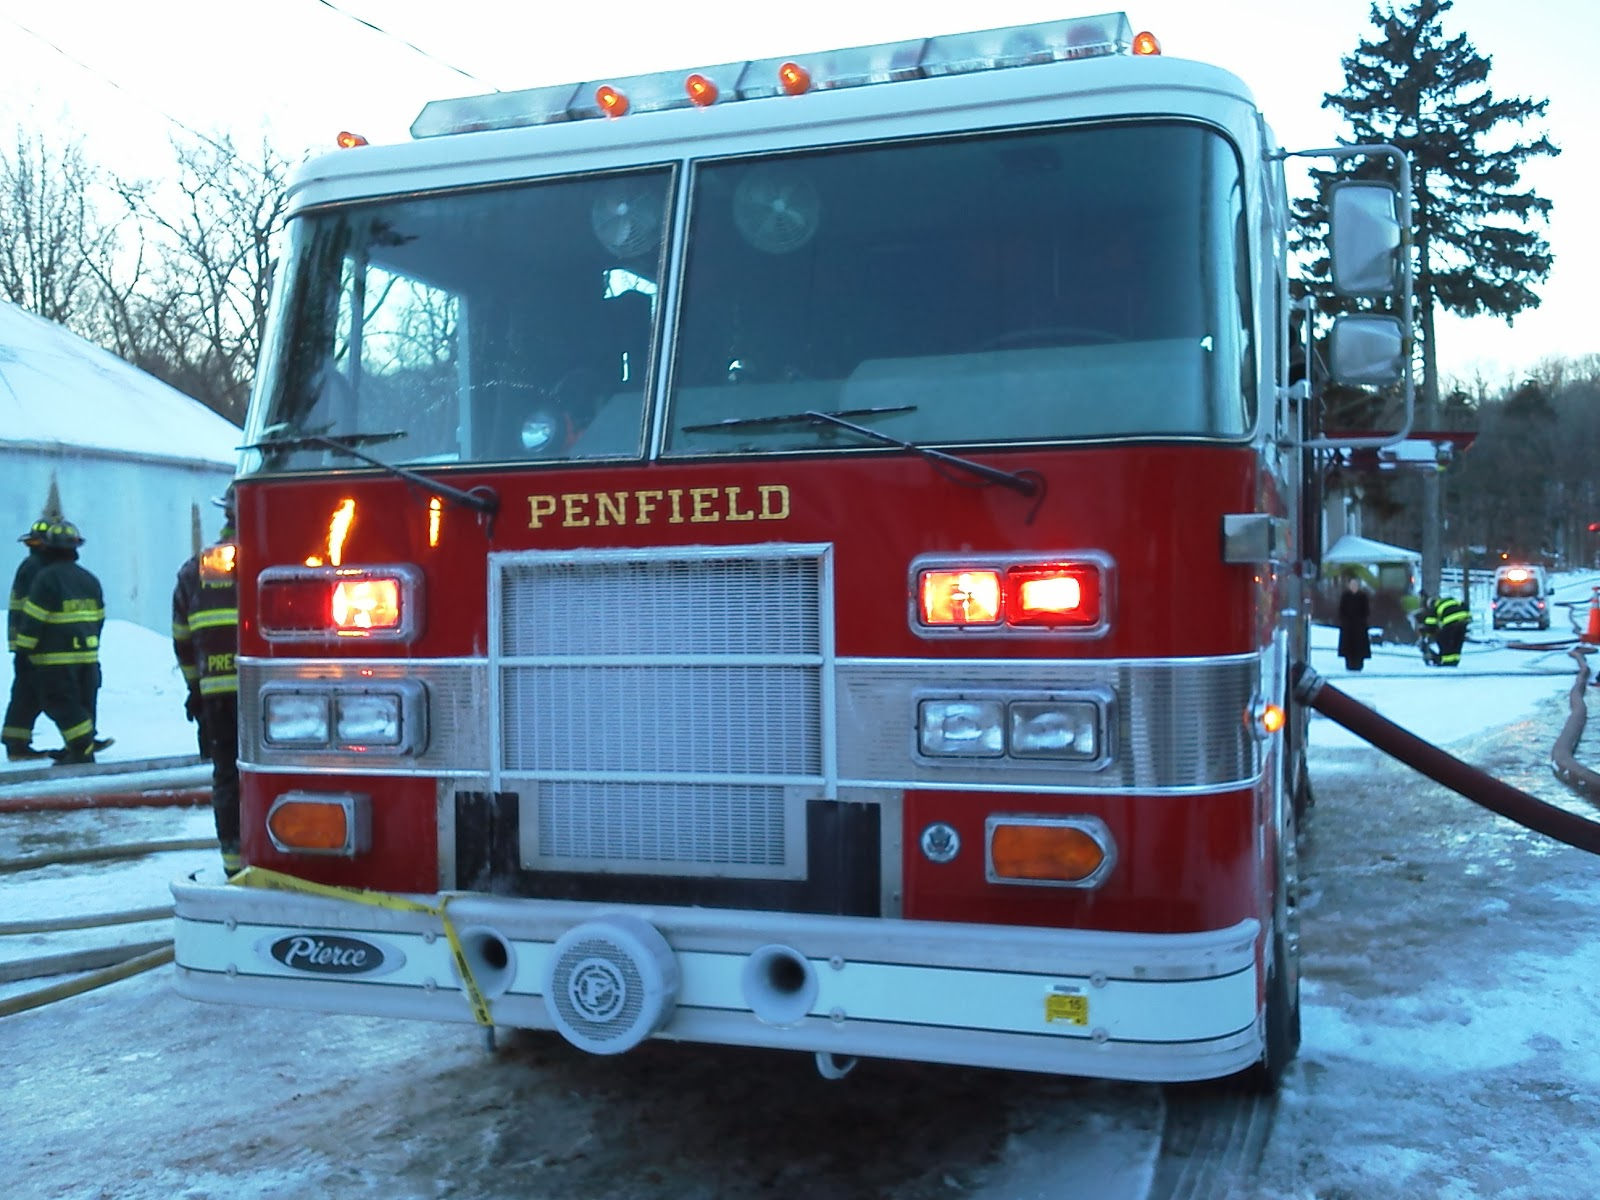 Penfield Fire Company Is Coming!